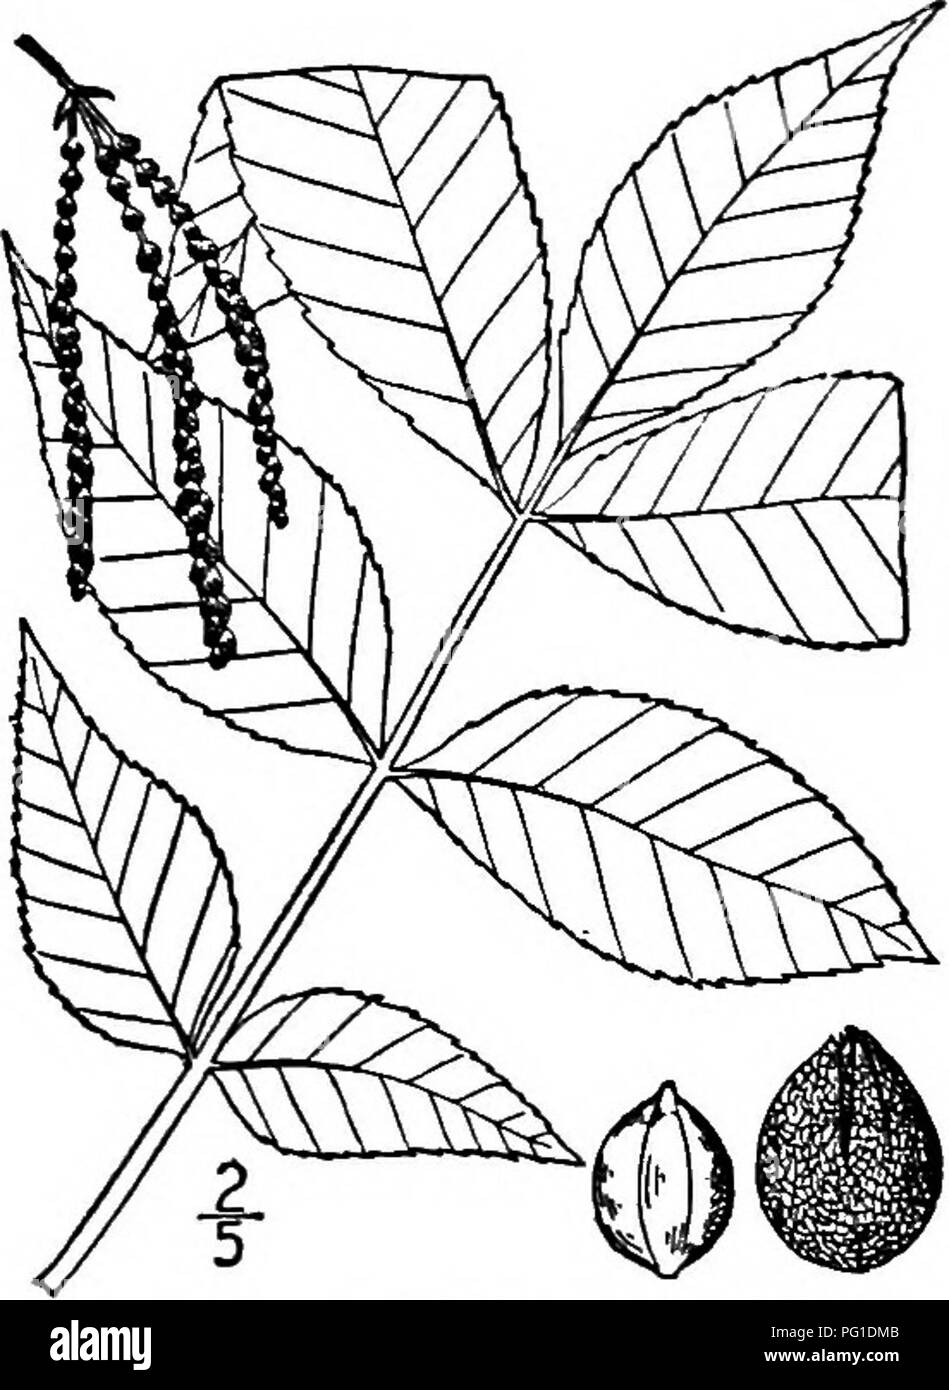 . North American trees : being descriptions and illustrations of the trees growing independently of cultivation in North America, north of Mexico and the West Indies . Trees. 236 The Hickories for a few light-colored warts, dark brown or gray. The terminal bud is ovoid, blunt, about 15 mm. long, its scales 6 to 8, imbricated, the outer reddish brown and leathery, the inner hairy and continue to grow when the leaf expands, becoming 2.5 to 3.5 cm. in length. The leaves are 2 to 3 dm. long; leaf- stalk stout and channeled; leaflets 5 to 7, oval, ob- long or ovate, 6 to 14 cm. long, narrowed or ro - Stock Image